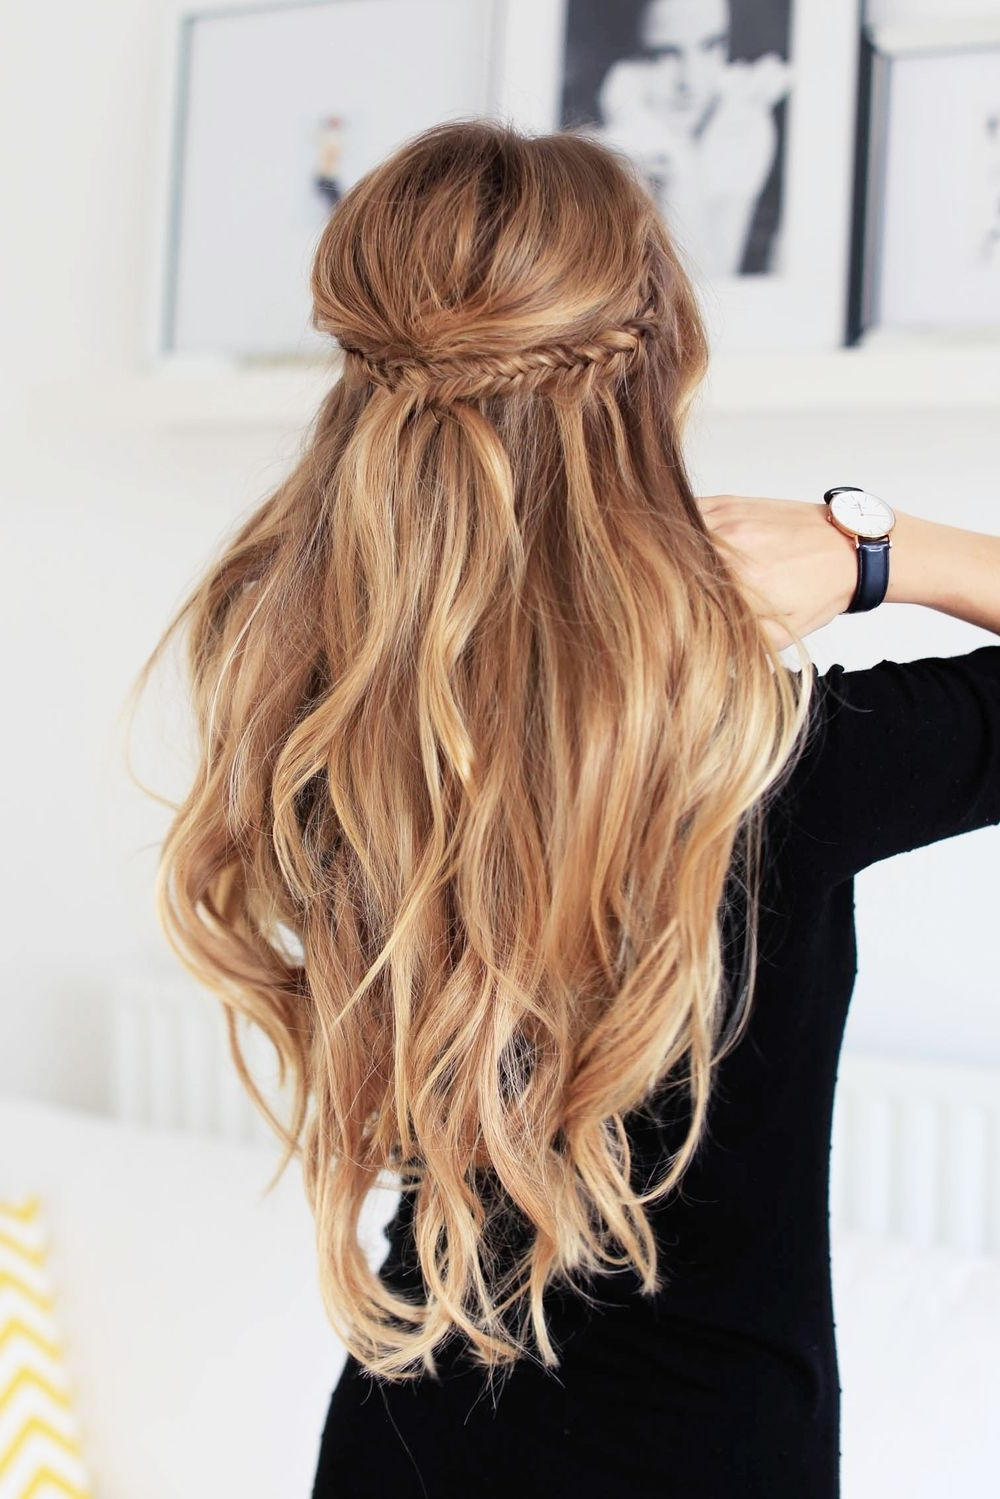 Make Two Small Fishtail Braids On Each Side, Then Put Them Together Regarding Favorite Side Pony Hairstyles With Fishbraids And Long Bangs (View 2 of 20)